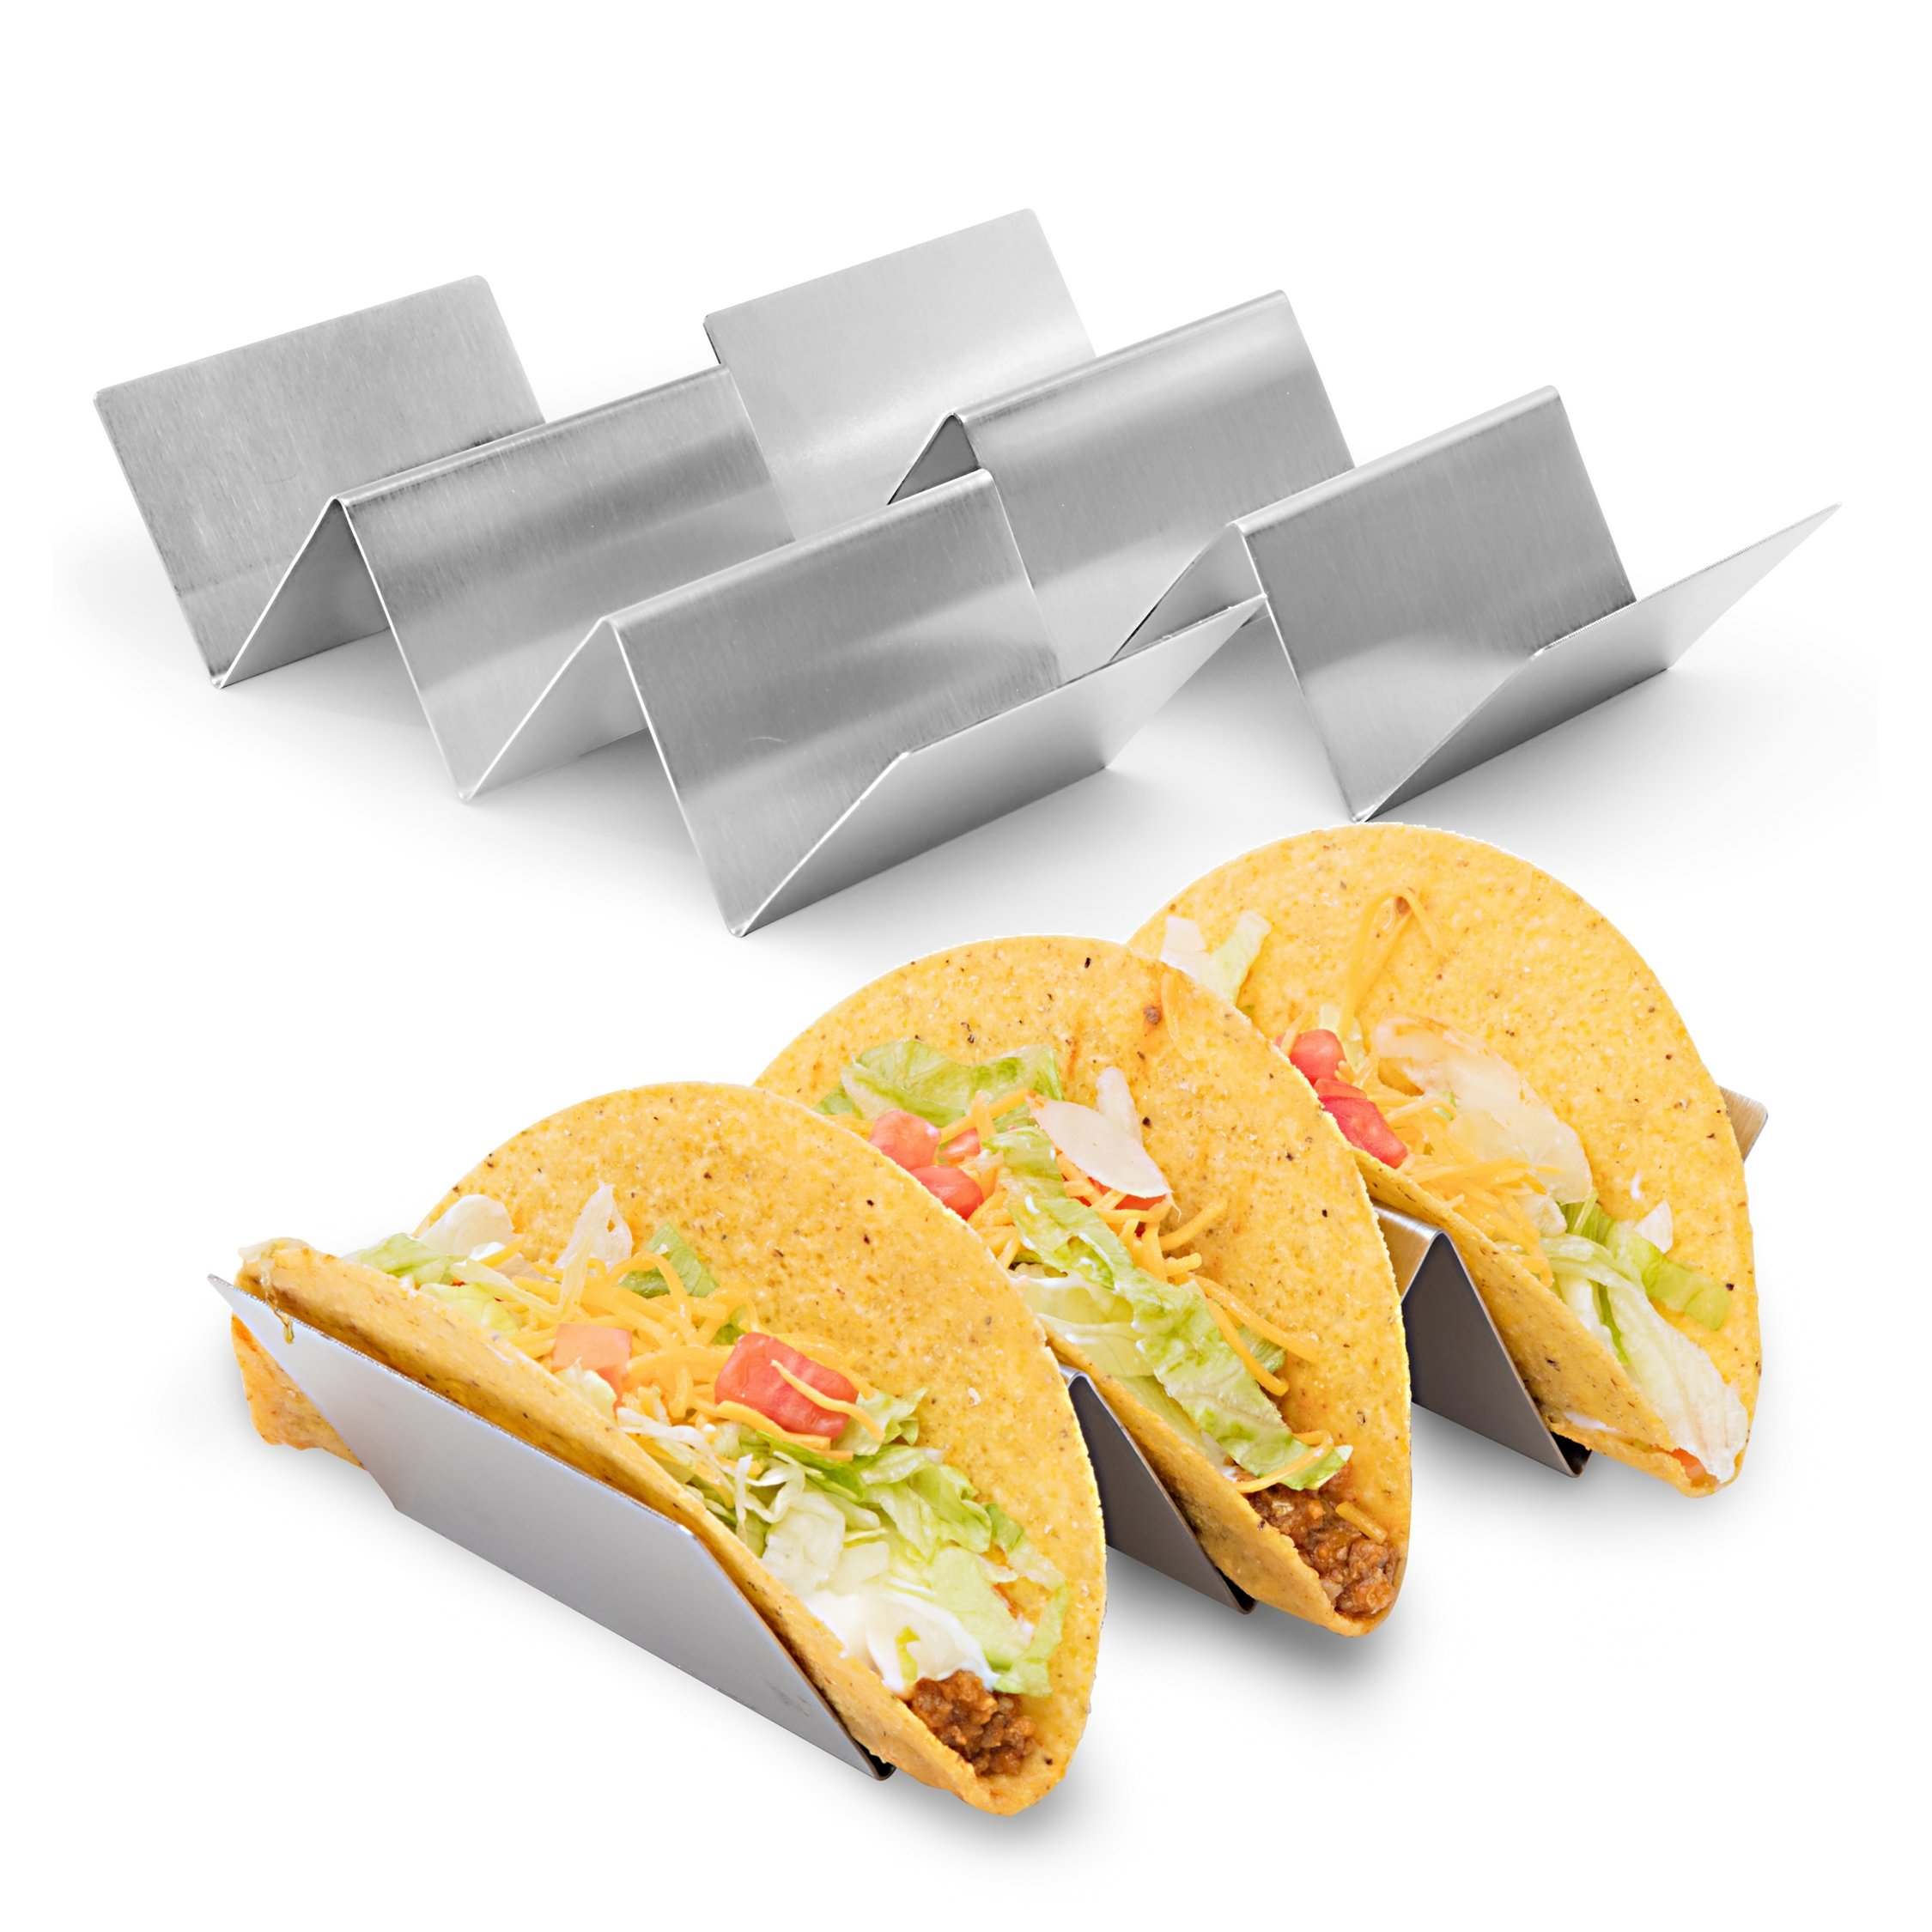 "2 Pack - Stylish Stainless Steel Taco Holder Stand, Taco Truck Tray Style, Rack Holds Up to 3 Tacos Each, Oven Safe for Baking, Dishwasher and Grill Safe, 4"" x 8"", by California Home Goods by California Home Goods (Image #1)"